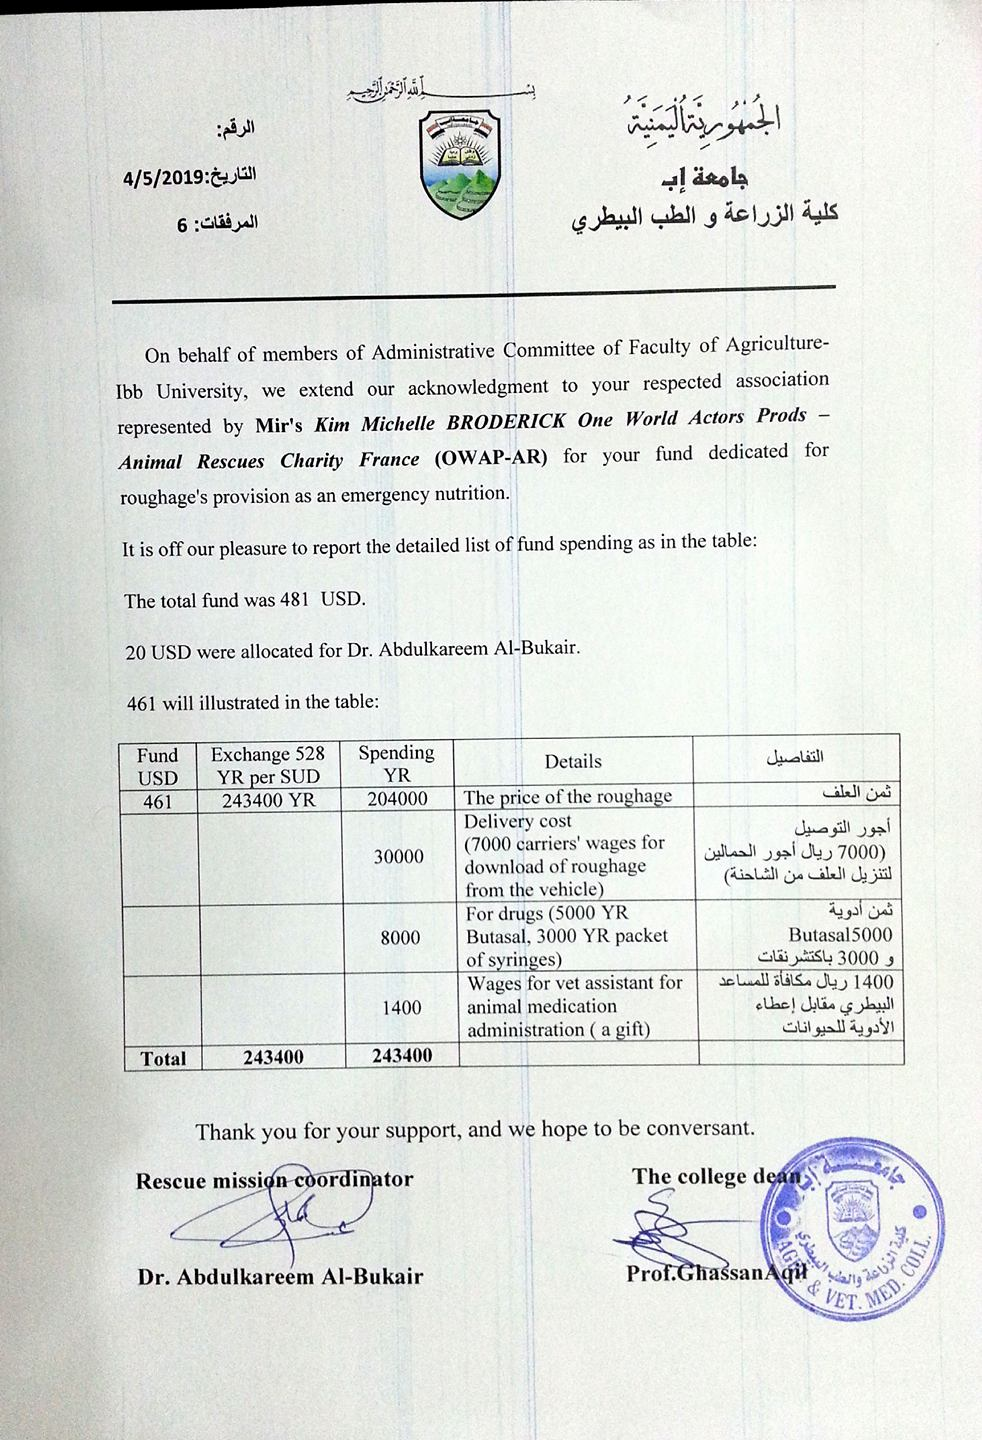 ibb col acknowledgment 4 May 2019 to OWAP AR.jpg